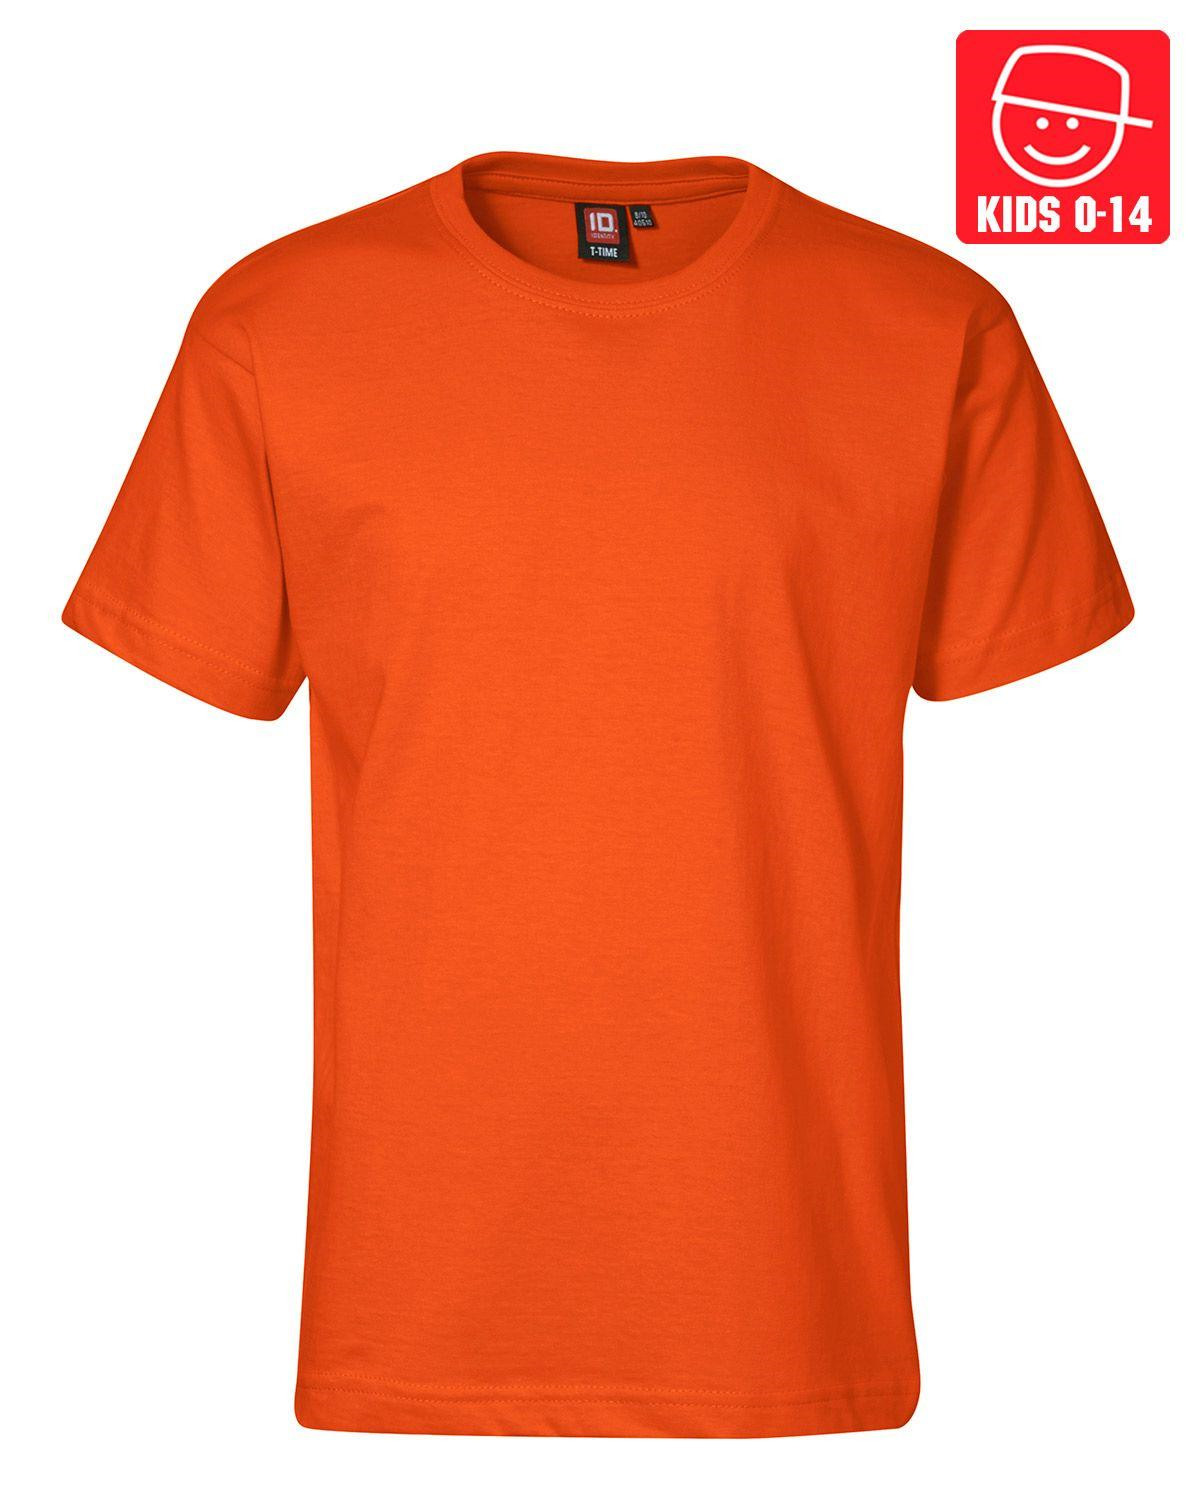 Image of   ID T-TIME T-shirt (Orange, 152)